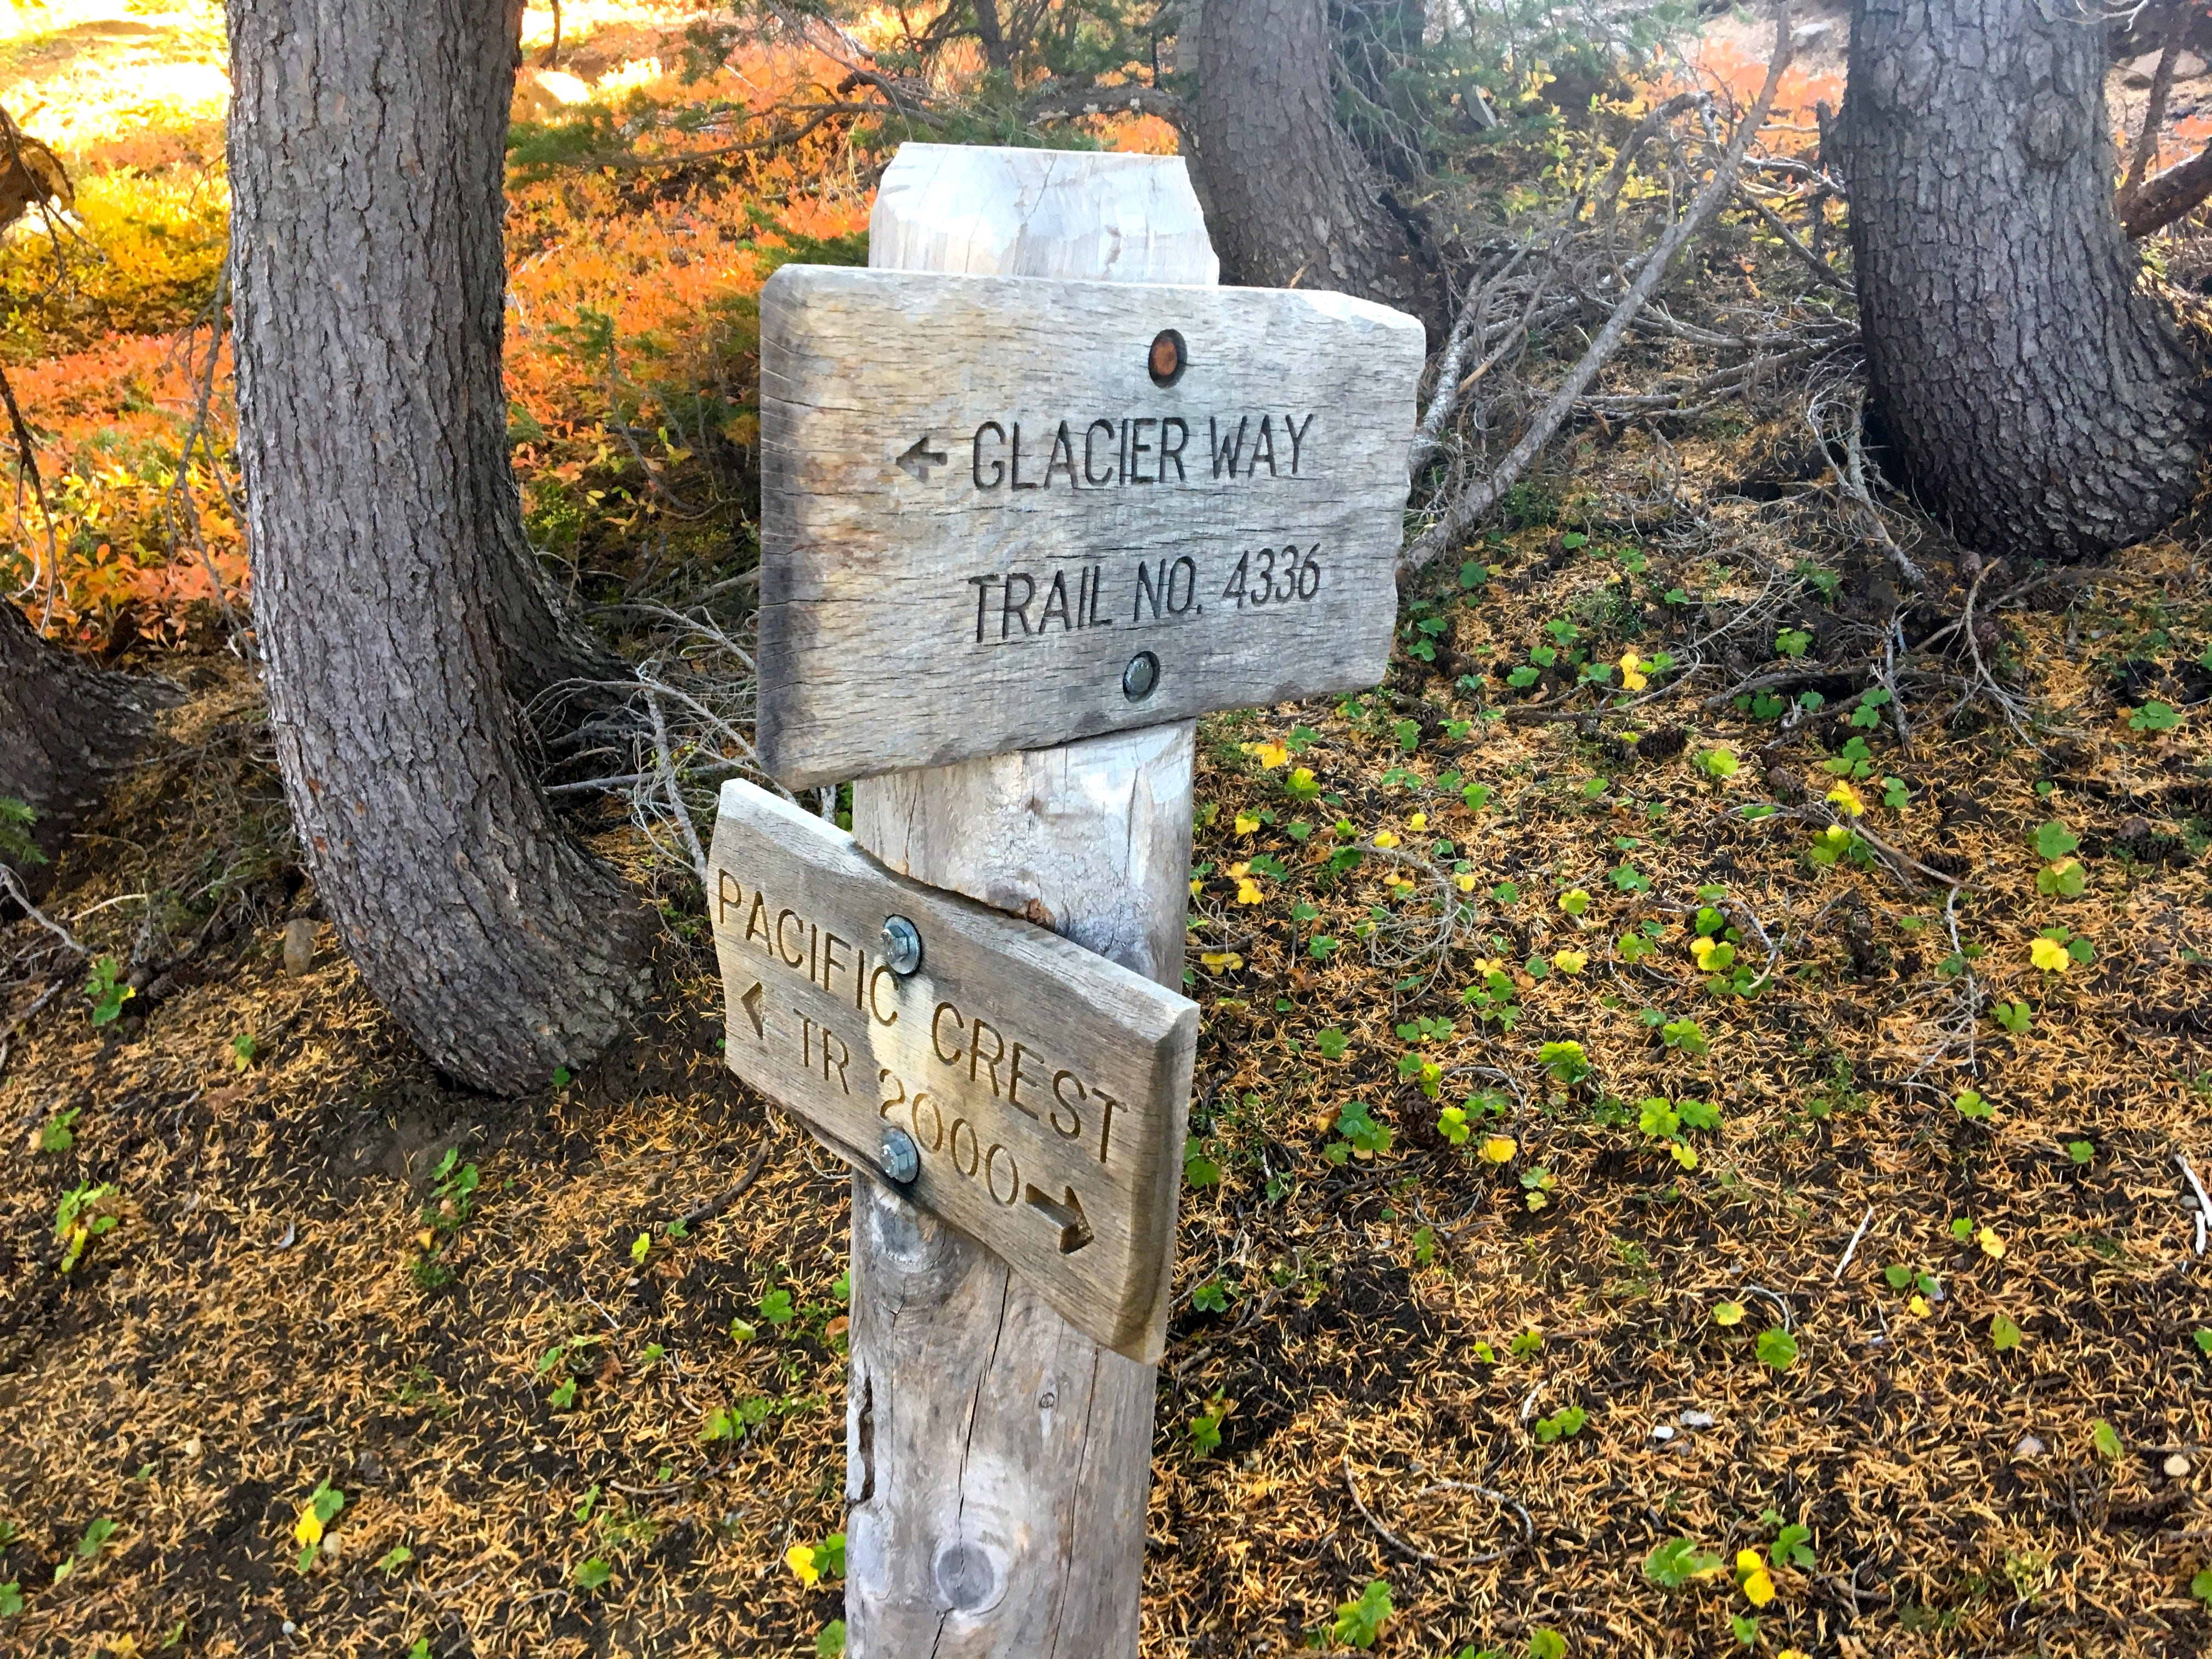 The Pacific Crest Trail and Glacier Way trail are both part of the Obsidian Limited Entry Area.